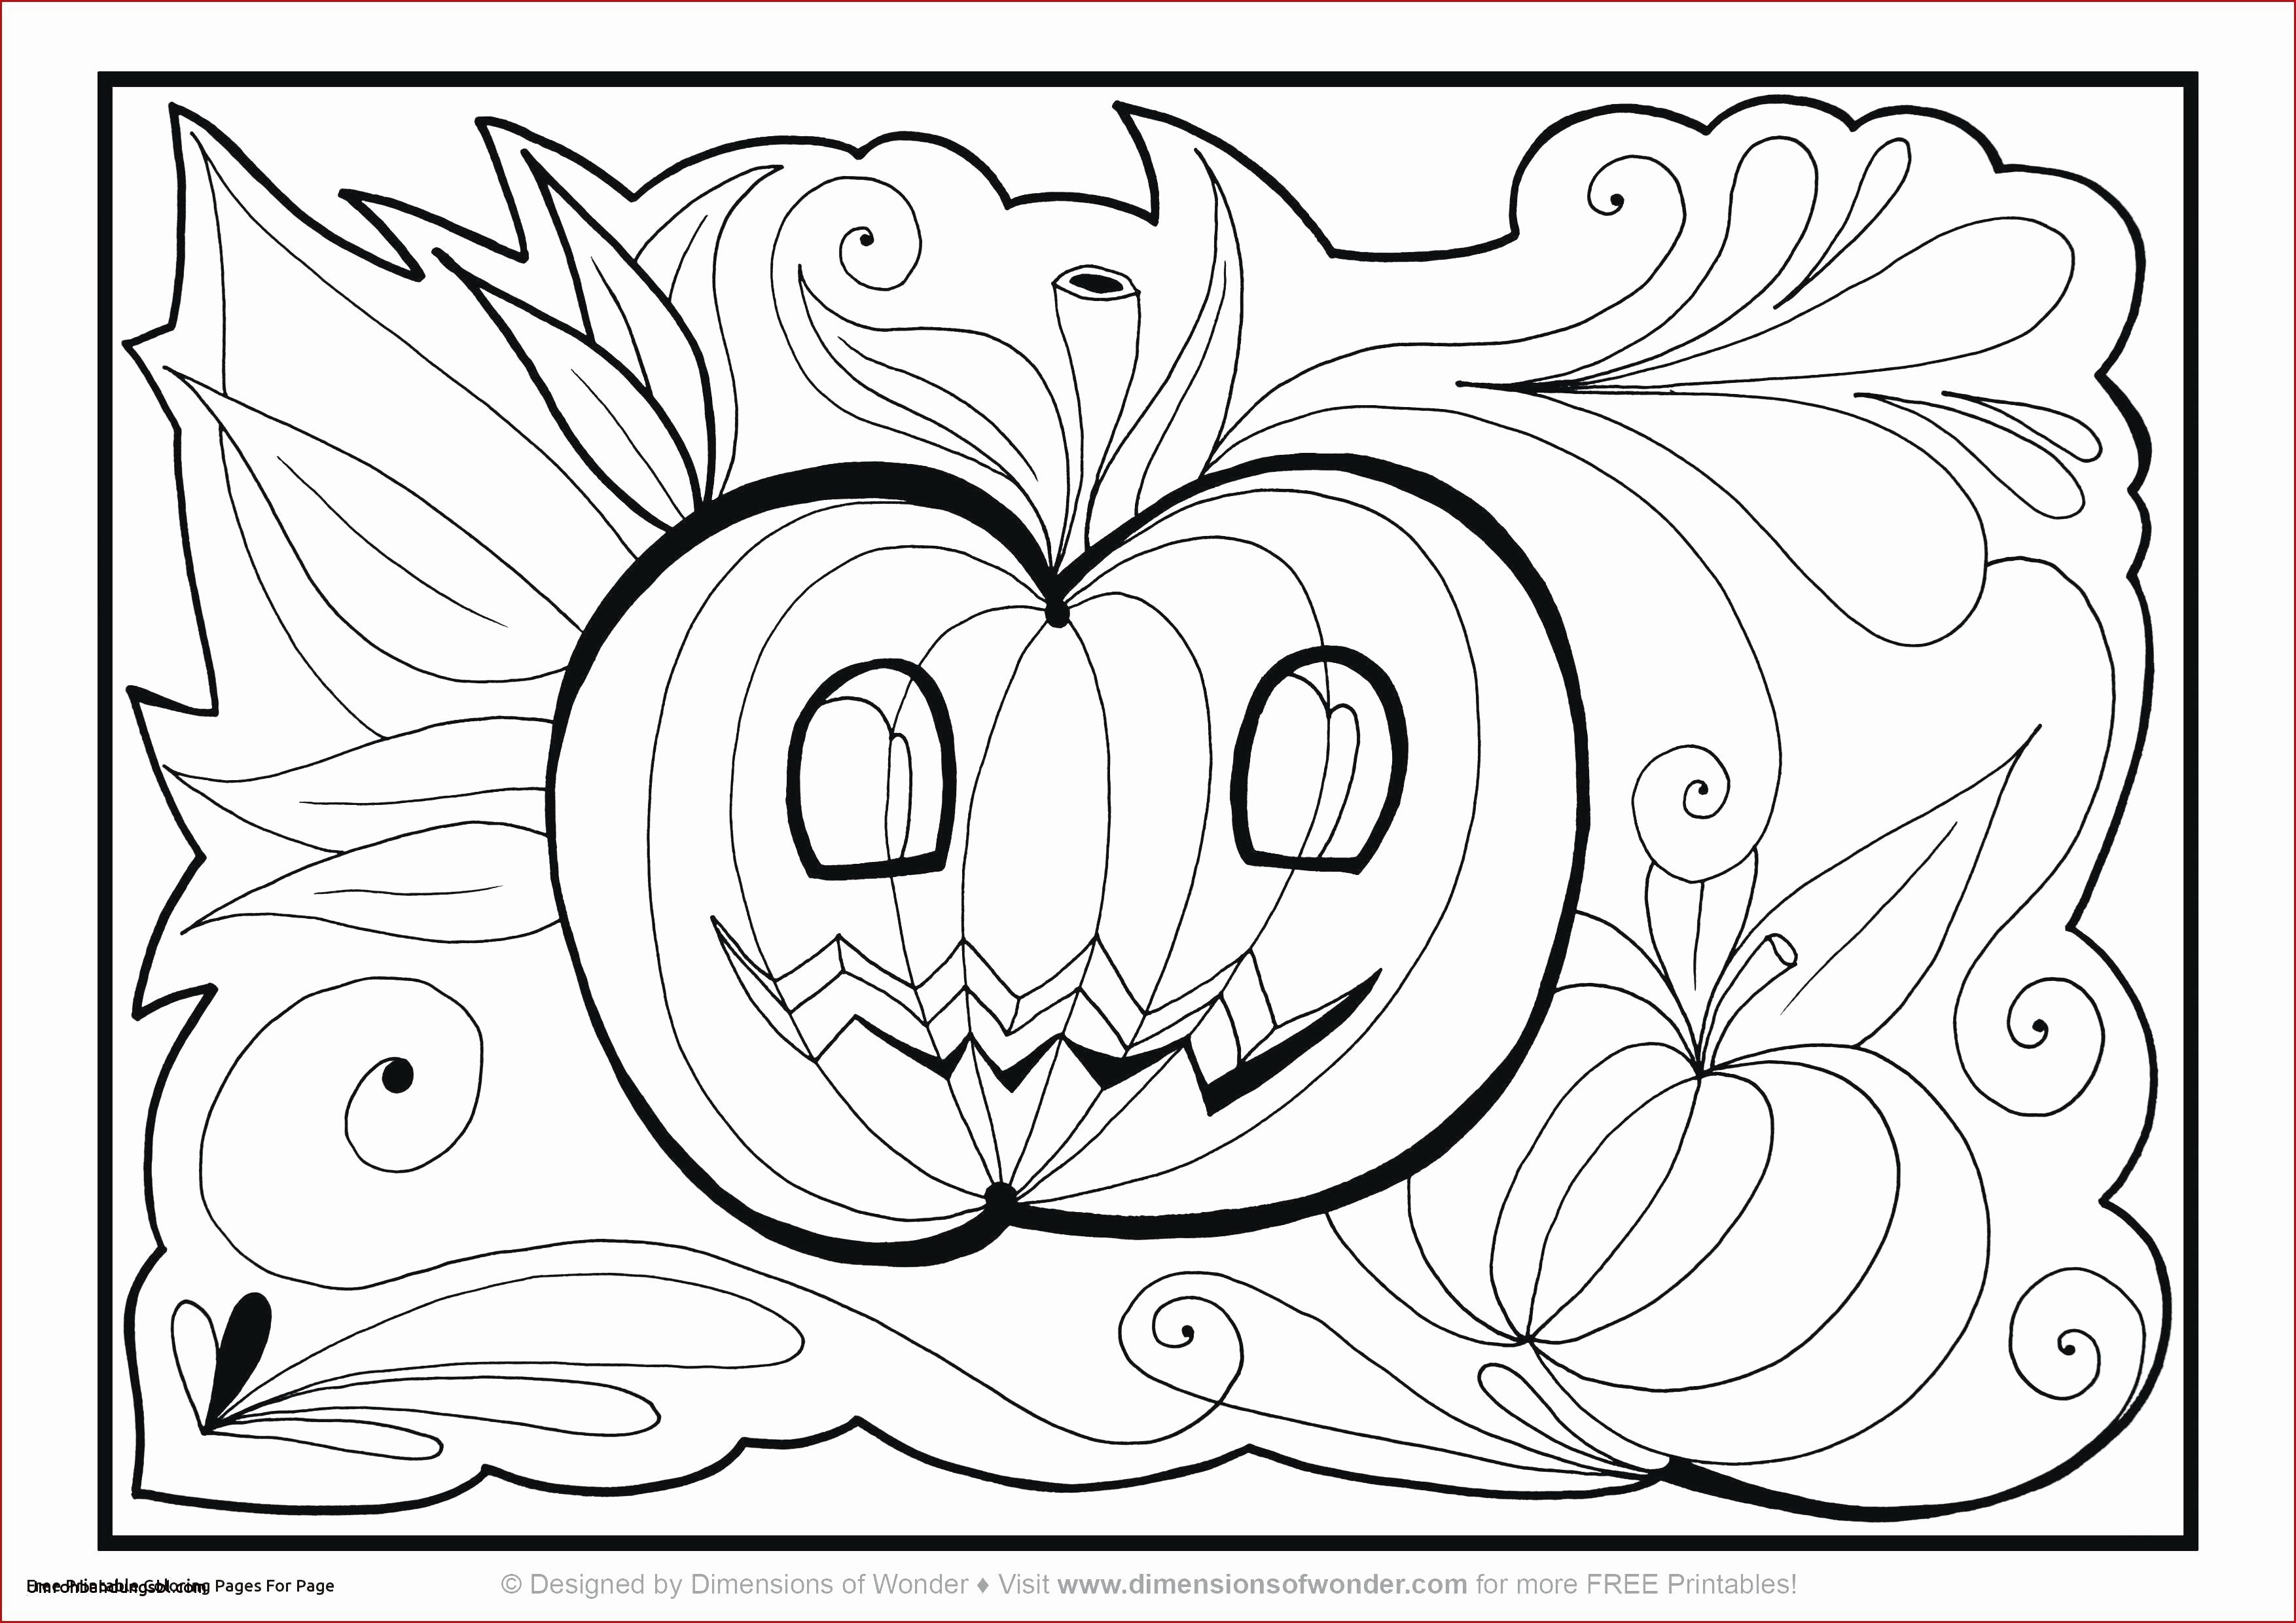 Coloring Activities For Babies Best Of Print Out Coloring Pages In 2020 Disney Coloring Pages Fall Coloring Pages Pumpkin Coloring Pages [ 2480 x 3508 Pixel ]